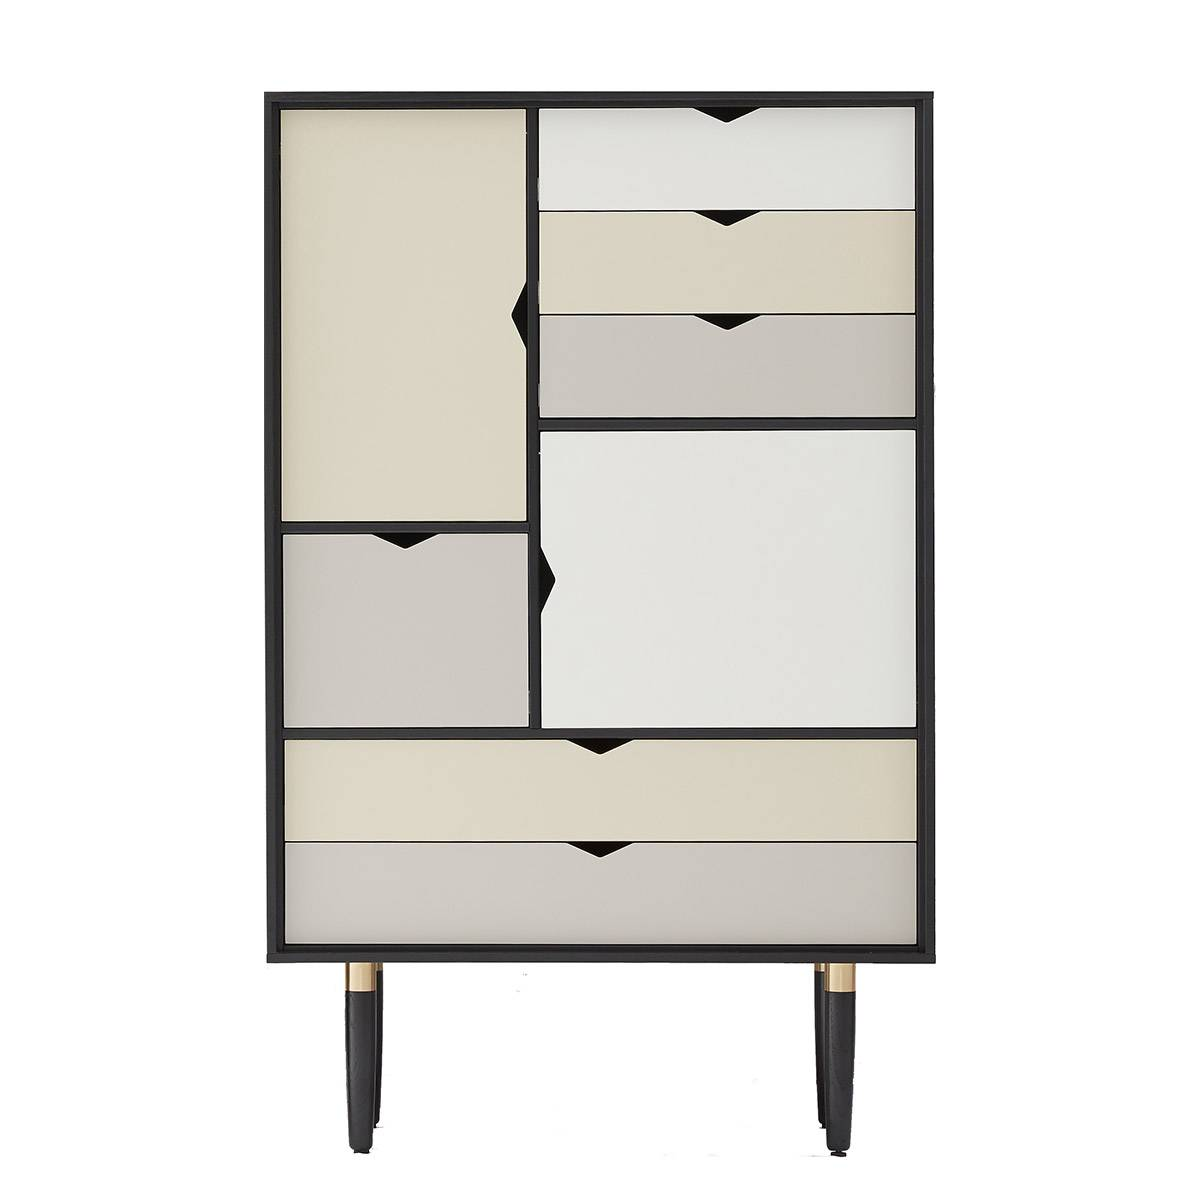 Unoliving Andersen Furniture - S5 Høyskjenk - Sort lakk - Farge